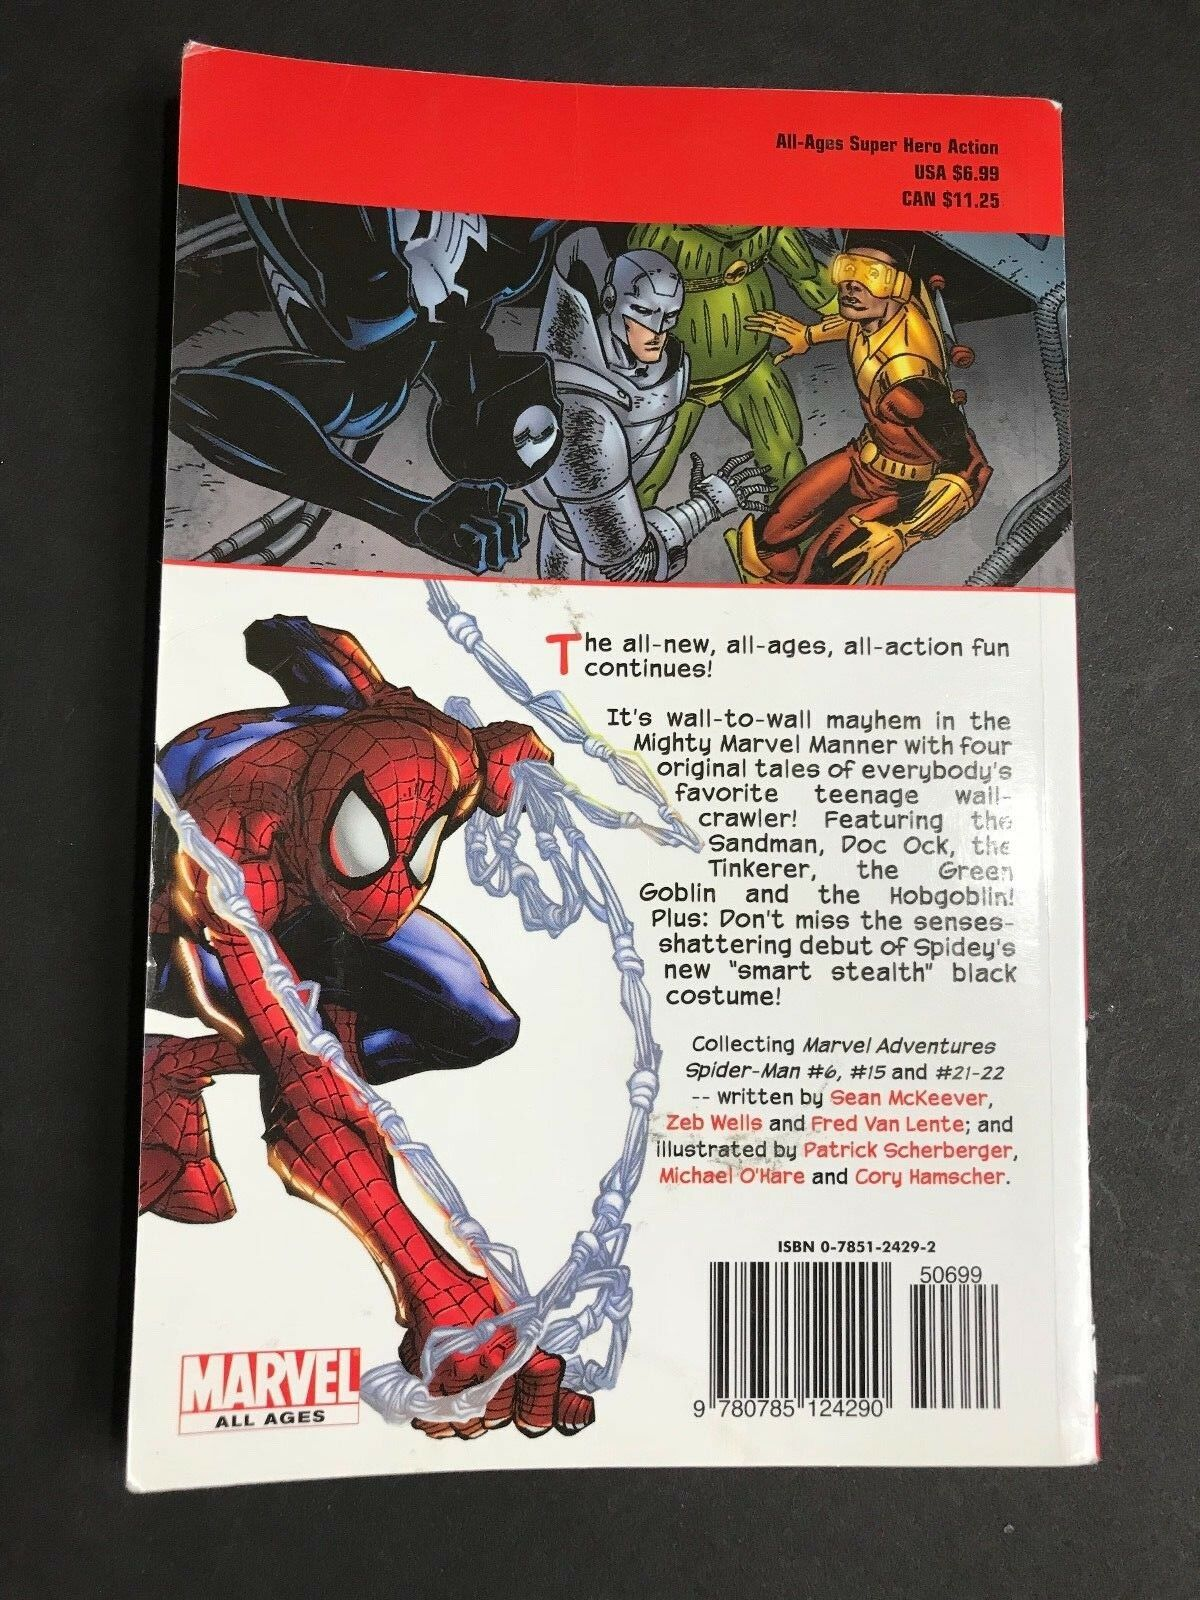 The Black Costume Vol  6 by Peter David, Zeb Wells, Kitty Fross and Sean  McKeever (2007, Paperback)